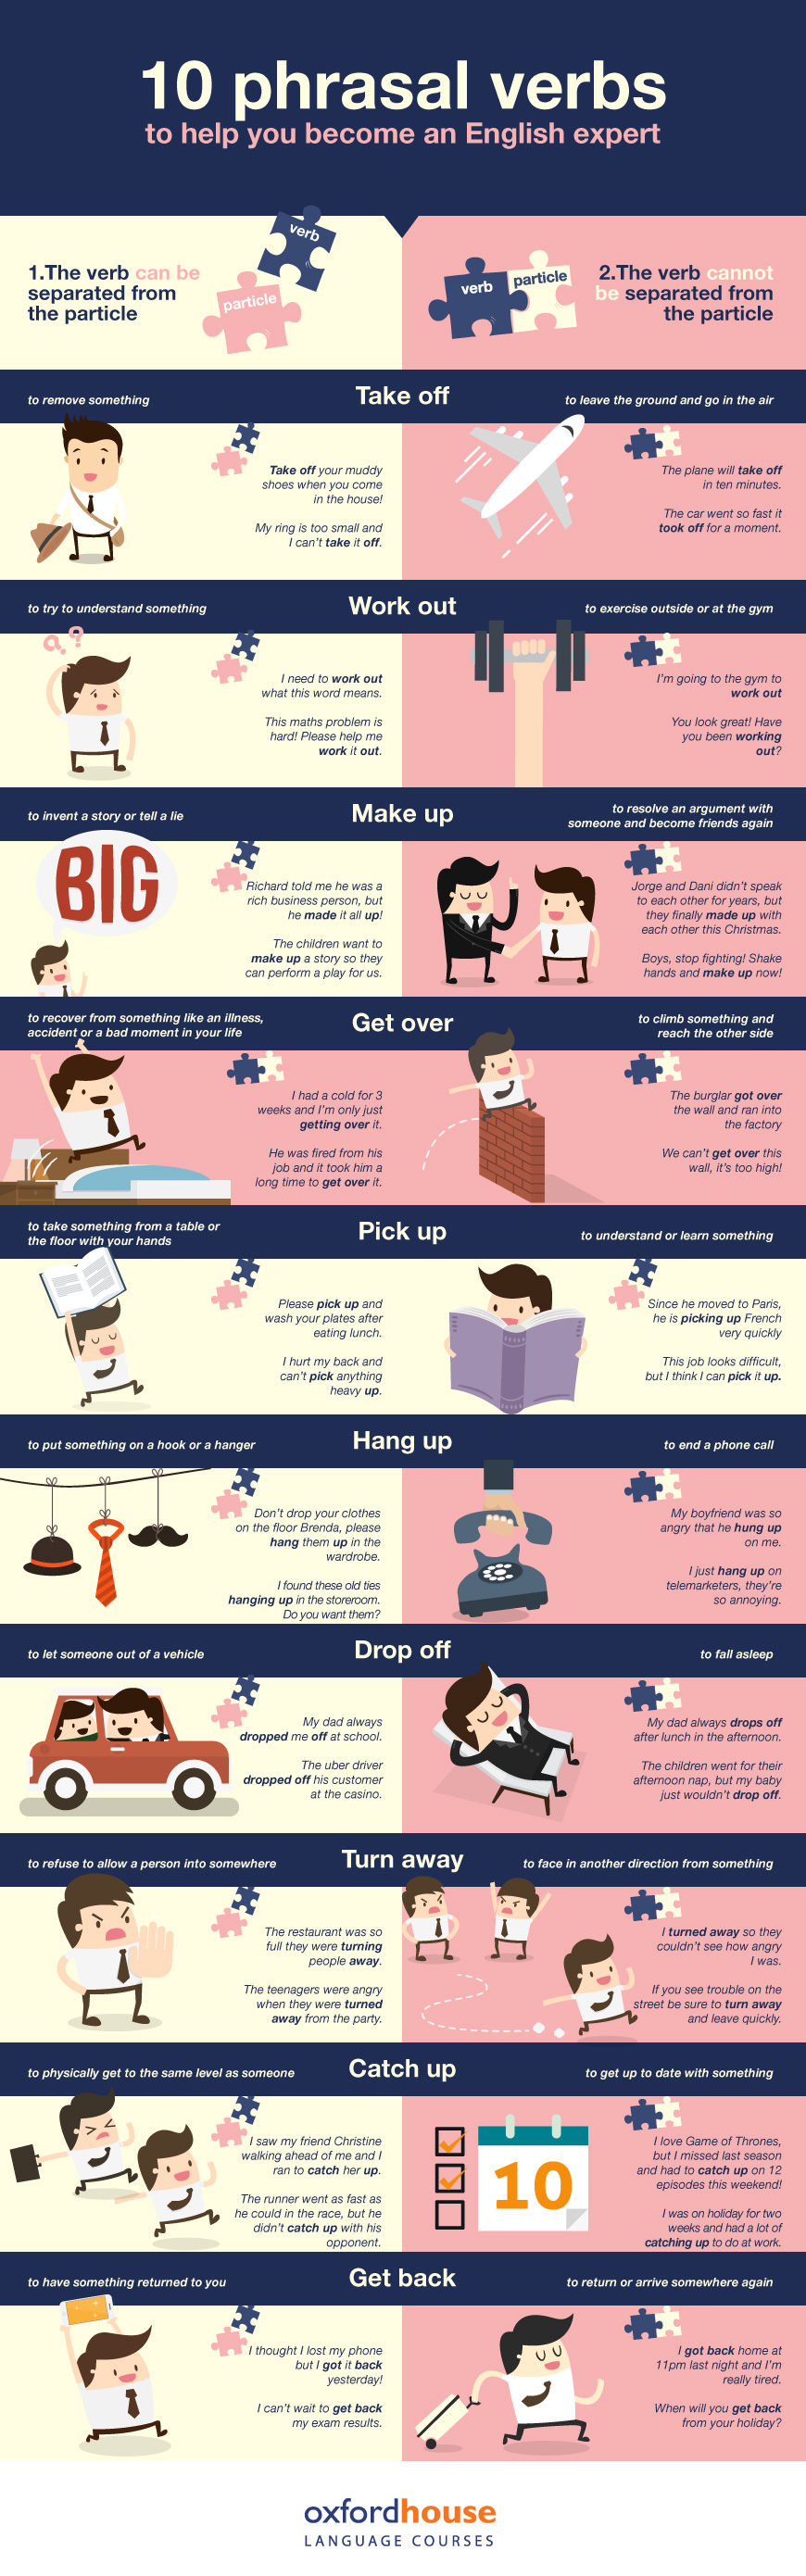 10 phrasal verbs to help you become an English expert [Infographic